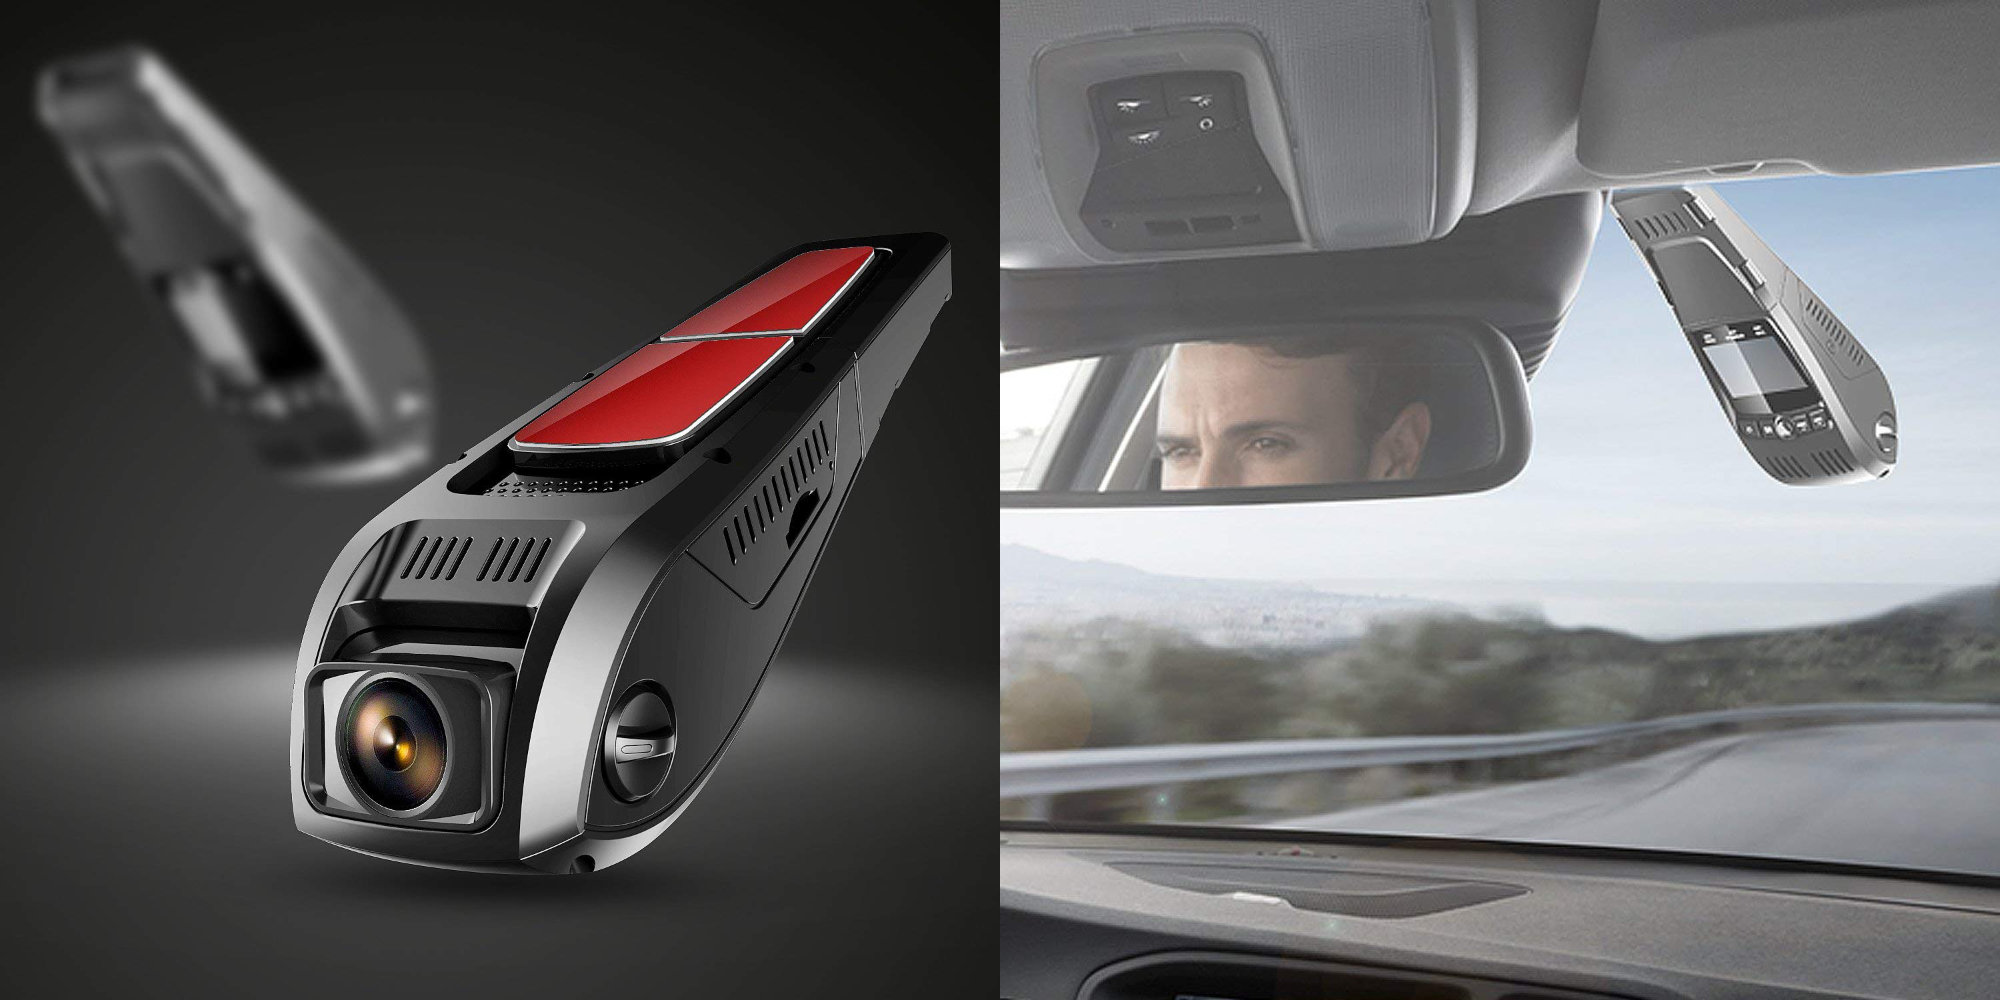 This Pruveeo 1080p Dash Cam unobtrusively mounts to your windshield: $27.50 (Over 30% off)